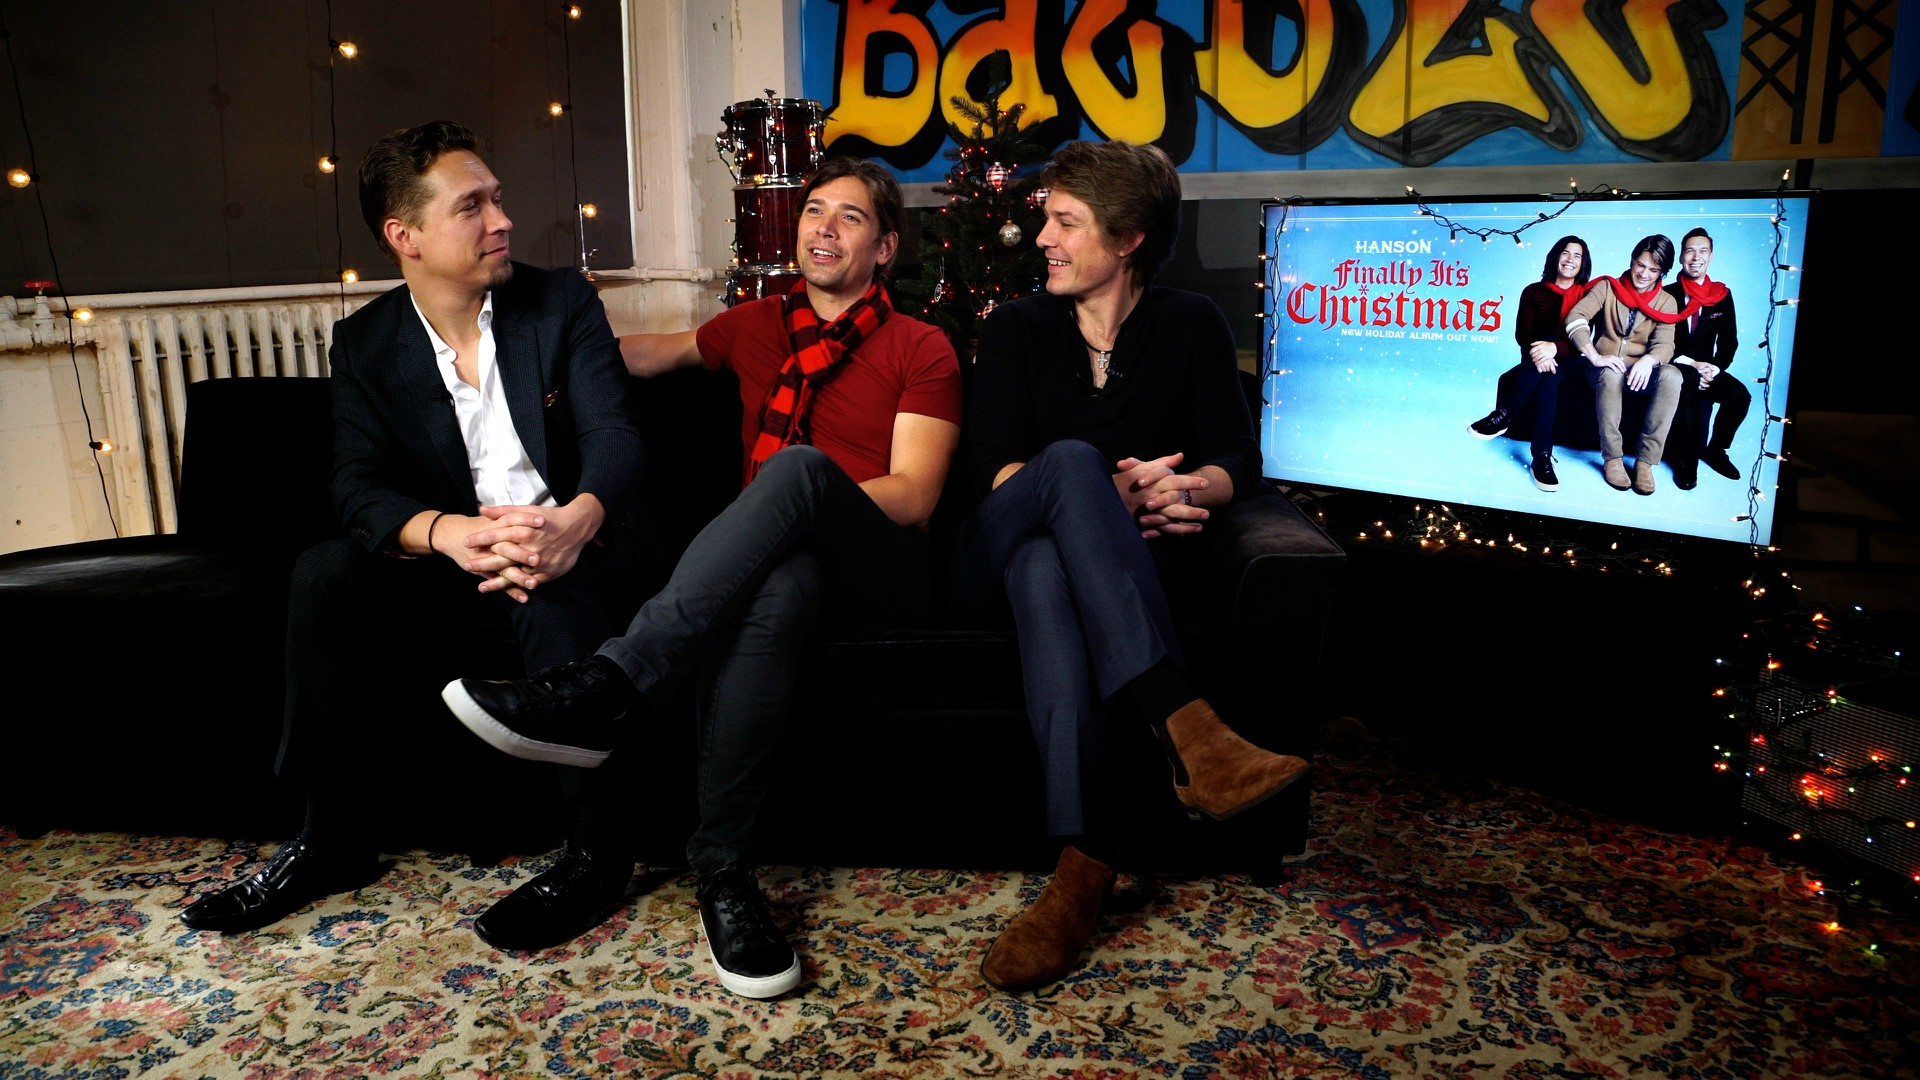 A Holiday Session With Hanson